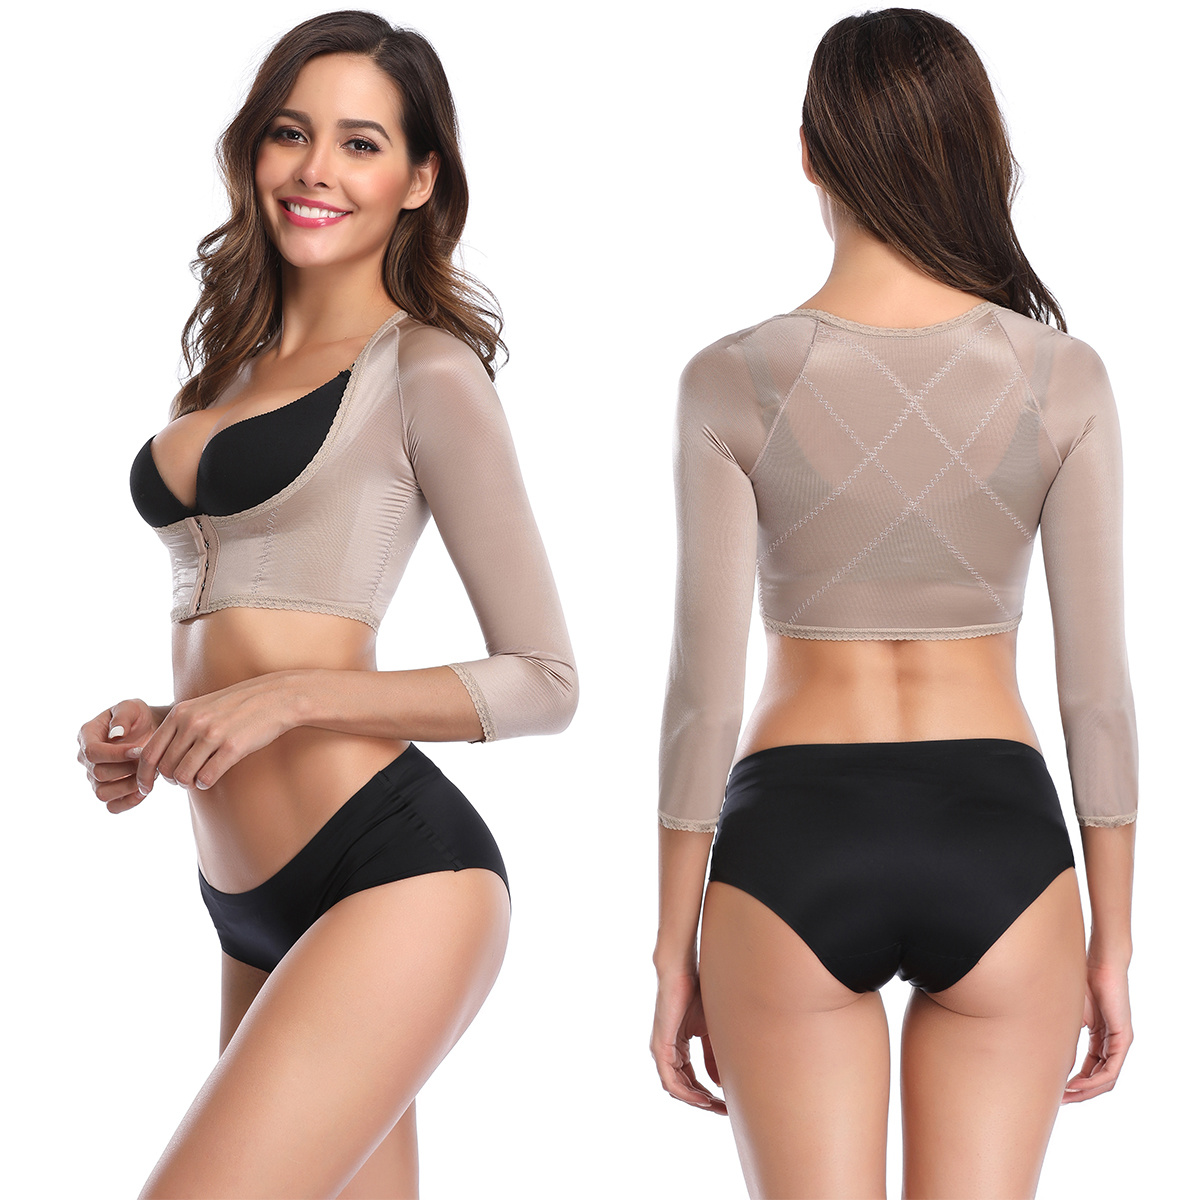 Image 2 - Humpback Posture Corrector Arm Shapers for Women Crop Tops Compression Slimming Upper Surgical Slimmer Arm Vest Shapewear-in Tops from Underwear & Sleepwears